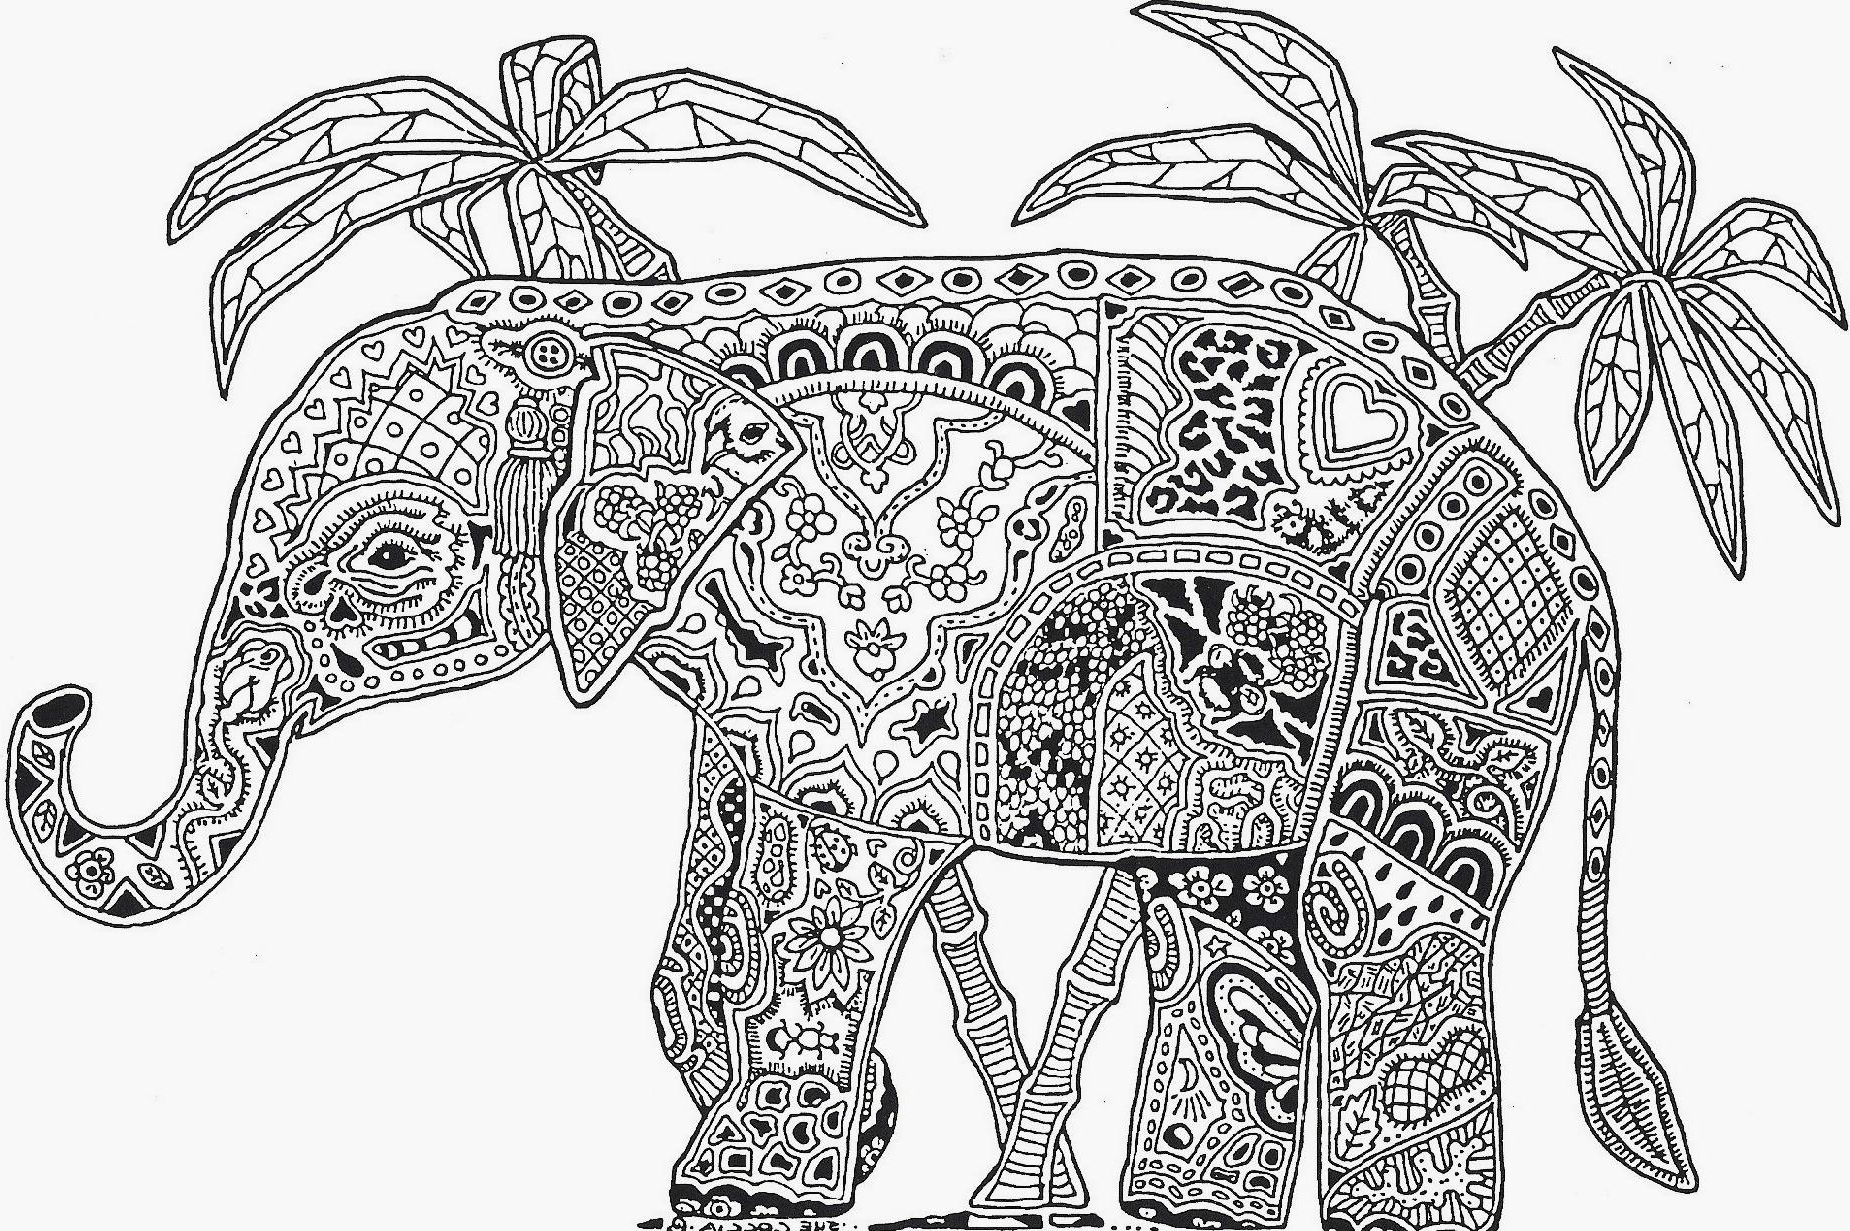 elephant coloring pages for adults - elephant coloring page for adults adult coloring pages free african elephant realistic coloring pages 3